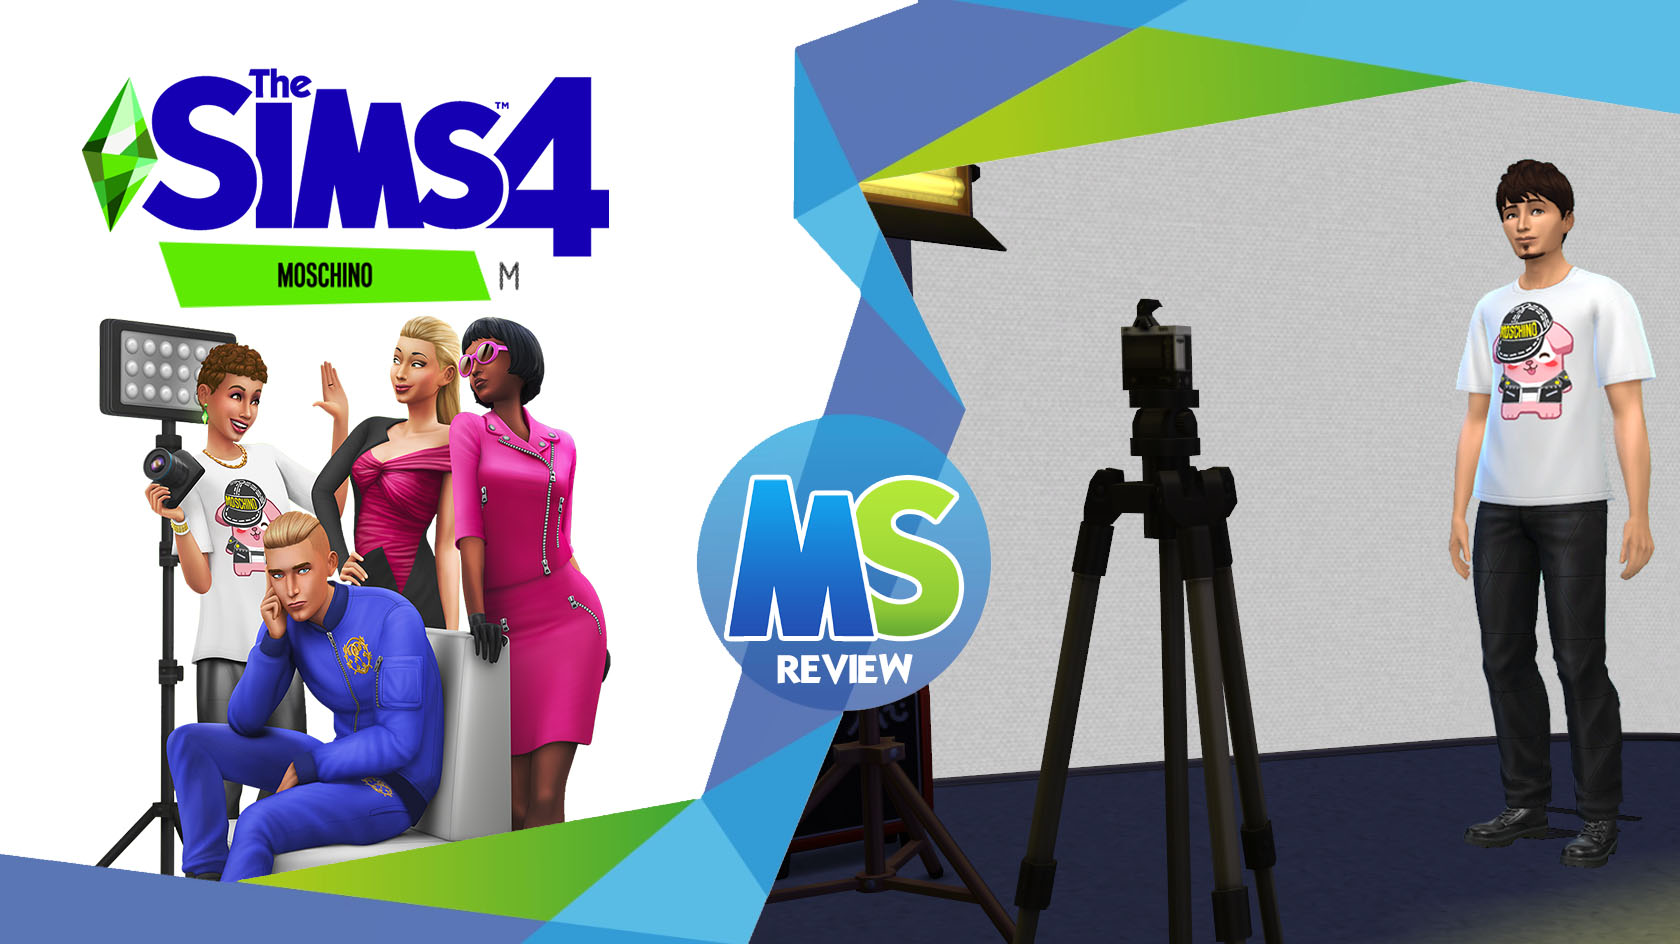 the sims 4 Moschino Stuff review logo